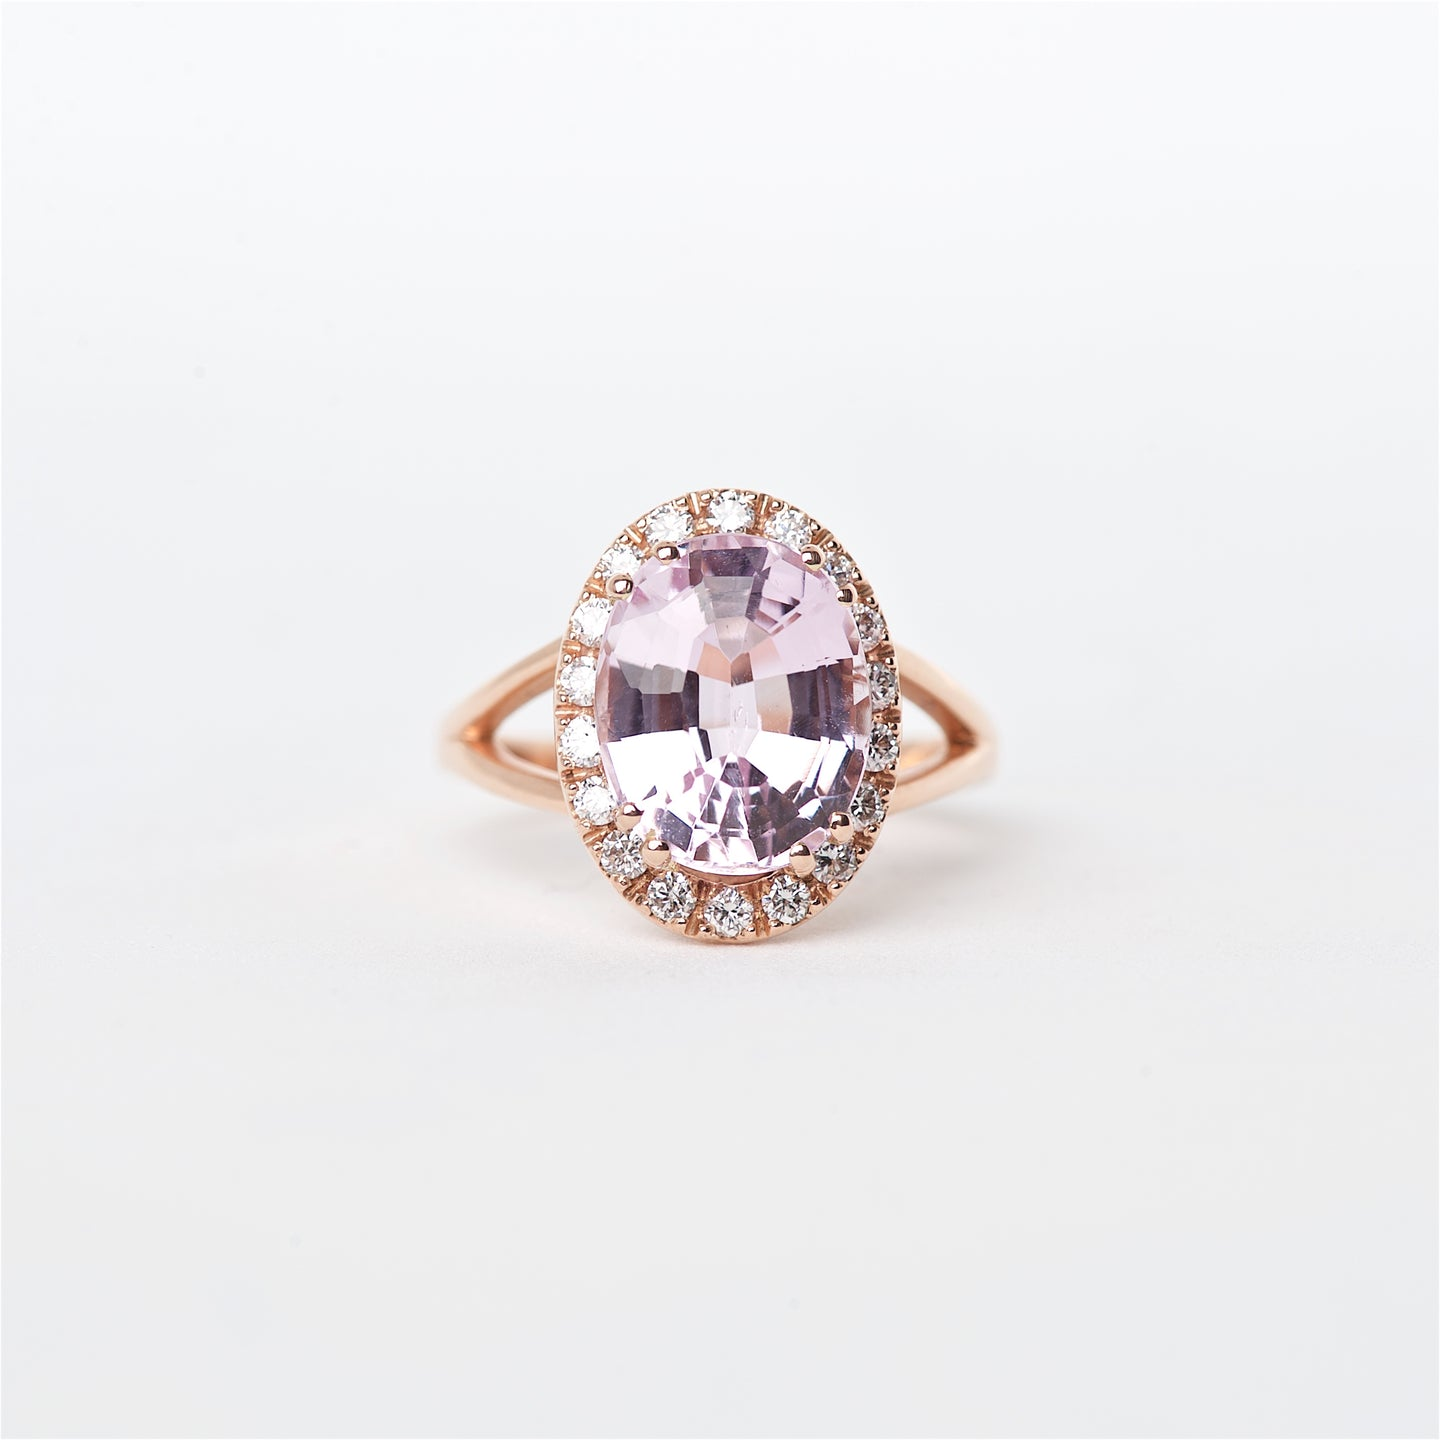 The Kory - 14K Kunzite and Diamond ring